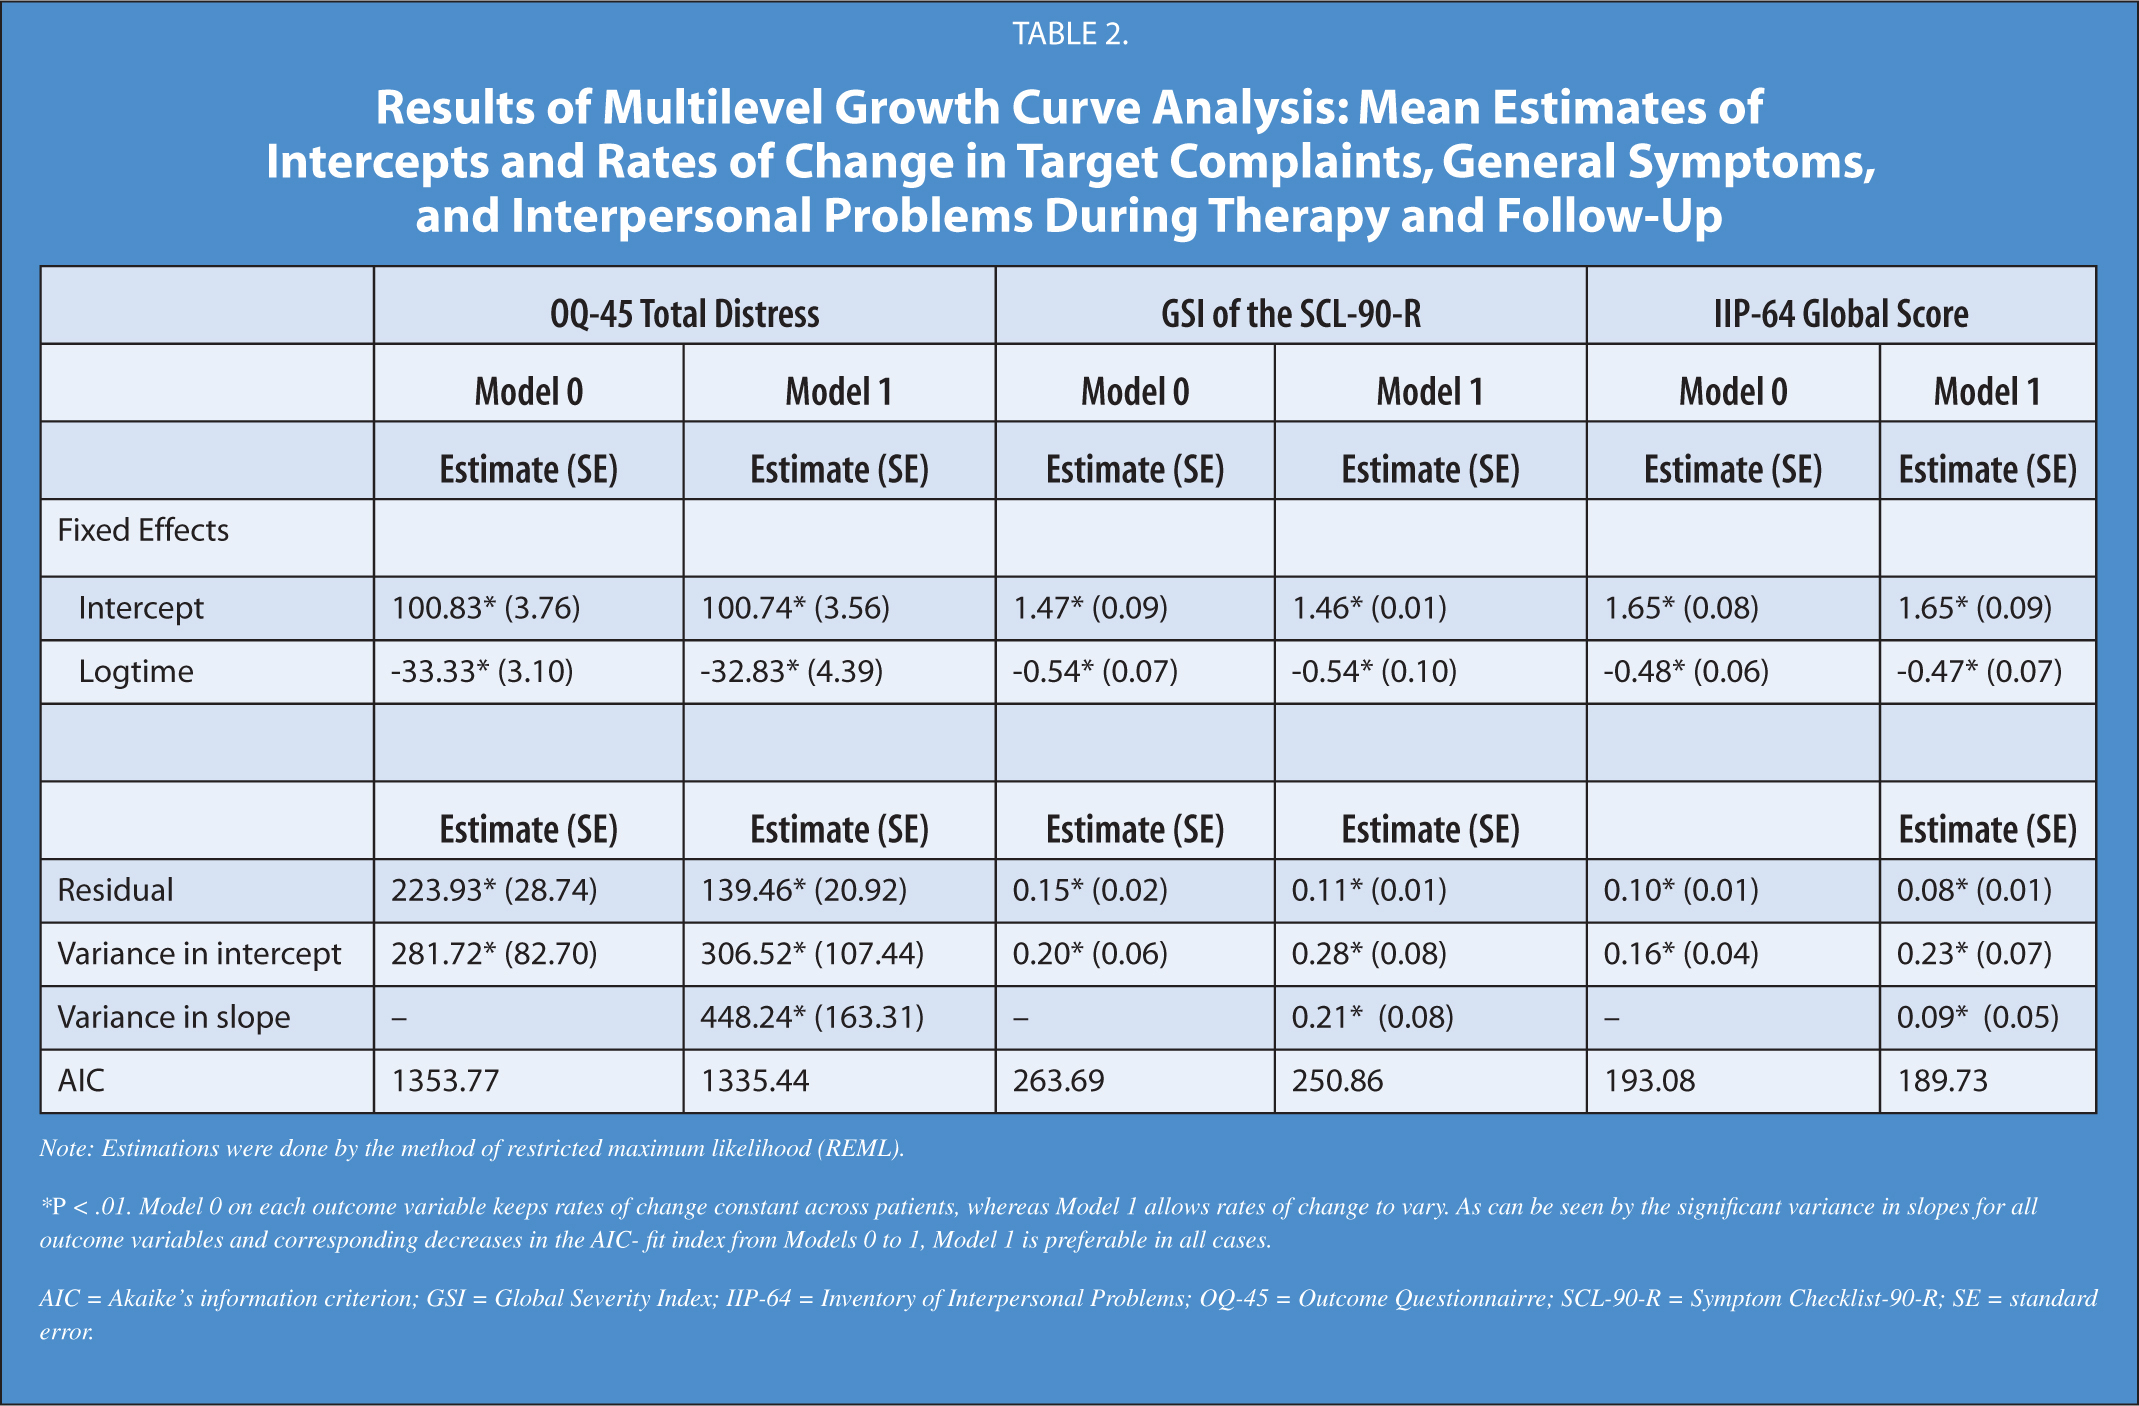 Results of Multilevel Growth Curve Analysis: Mean Estimates of Intercepts and Rates of Change in Target Complaints, General Symptoms, and Interpersonal Problems During Therapy and Follow-Up